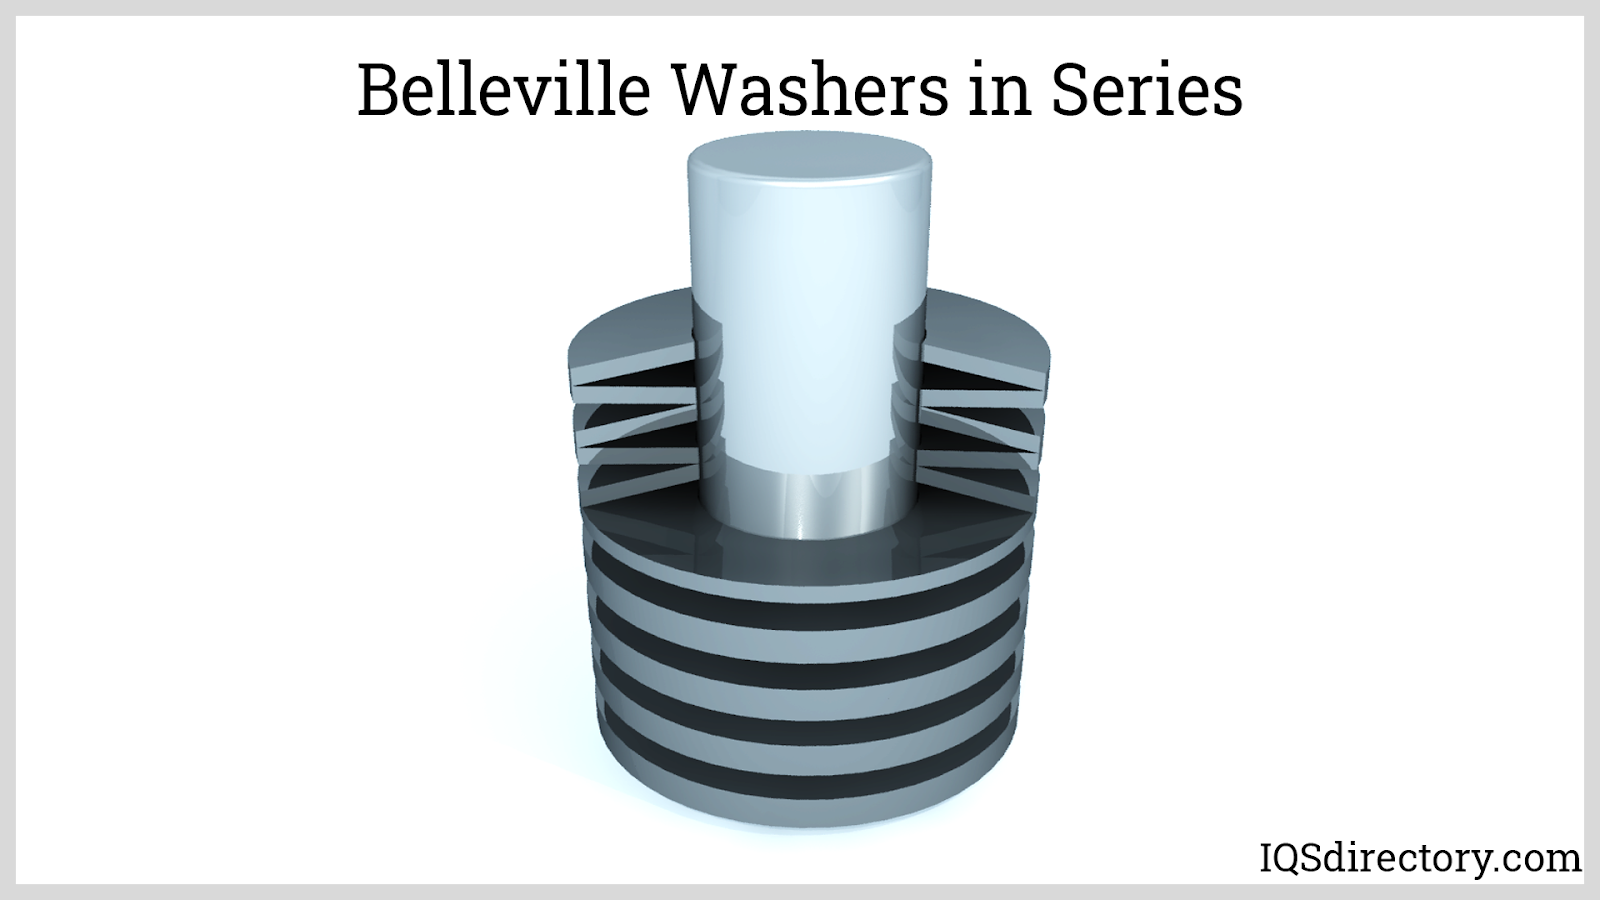 Belleville Washers in Series